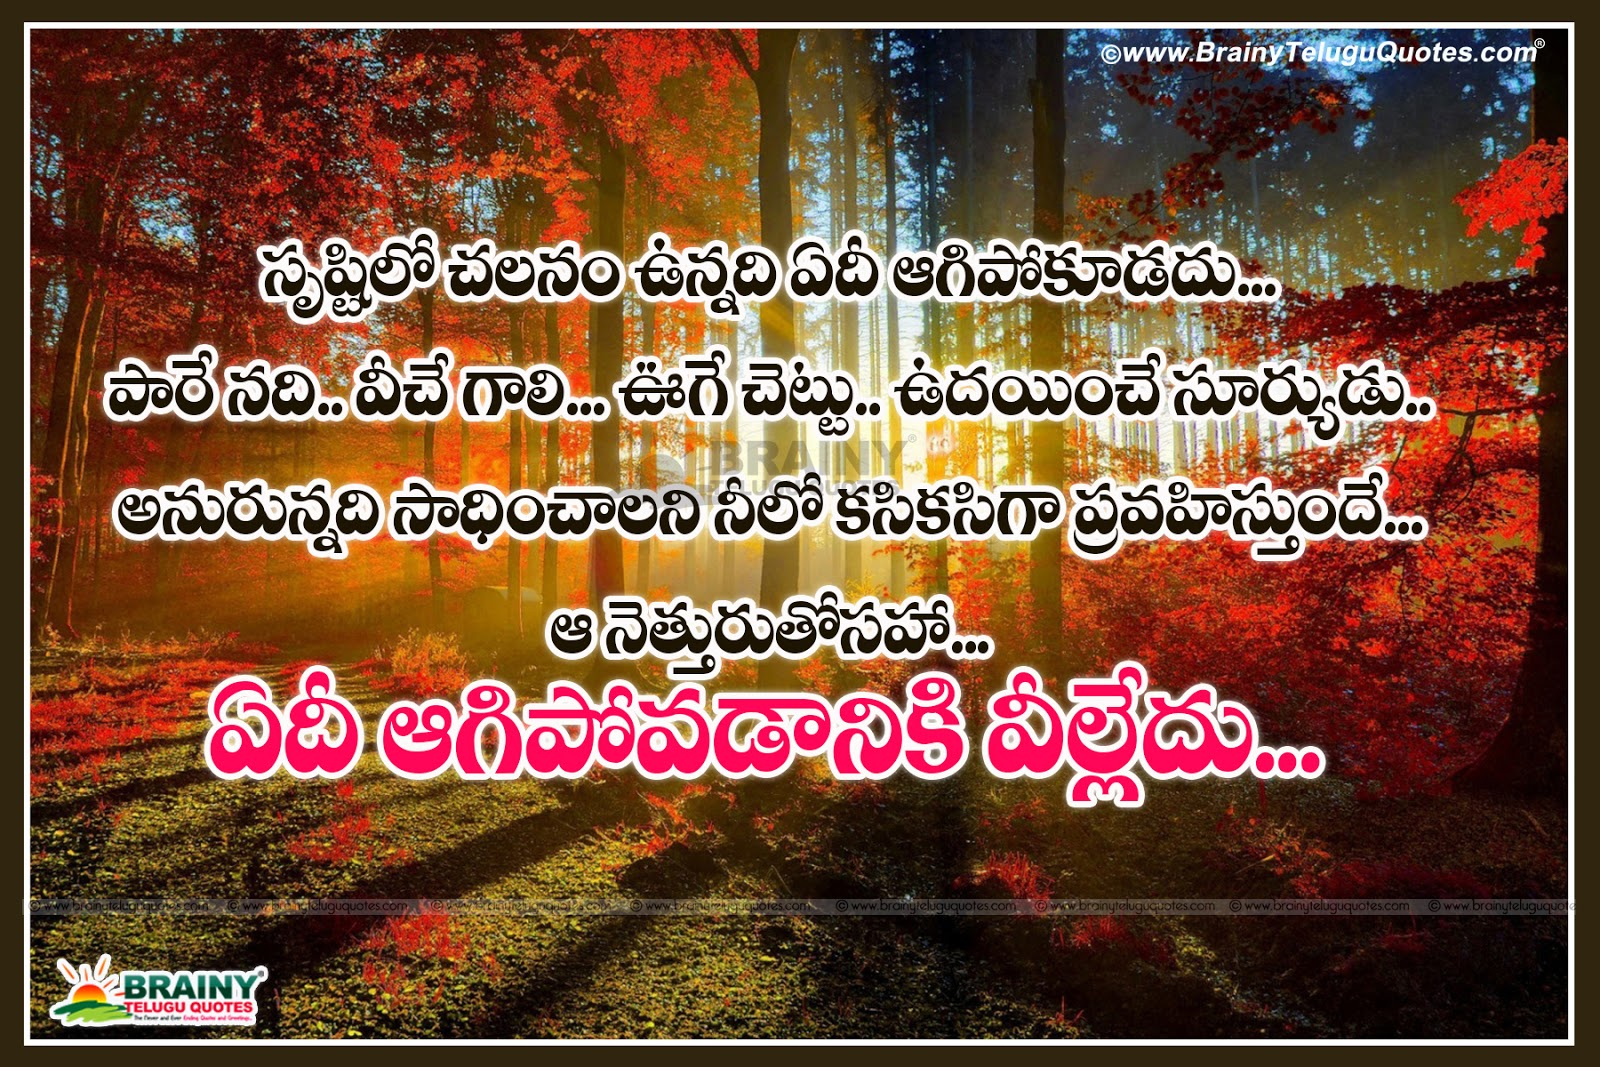 Self Respect Quotes Best Inspirational Telugu Quotes With Beautiful Images